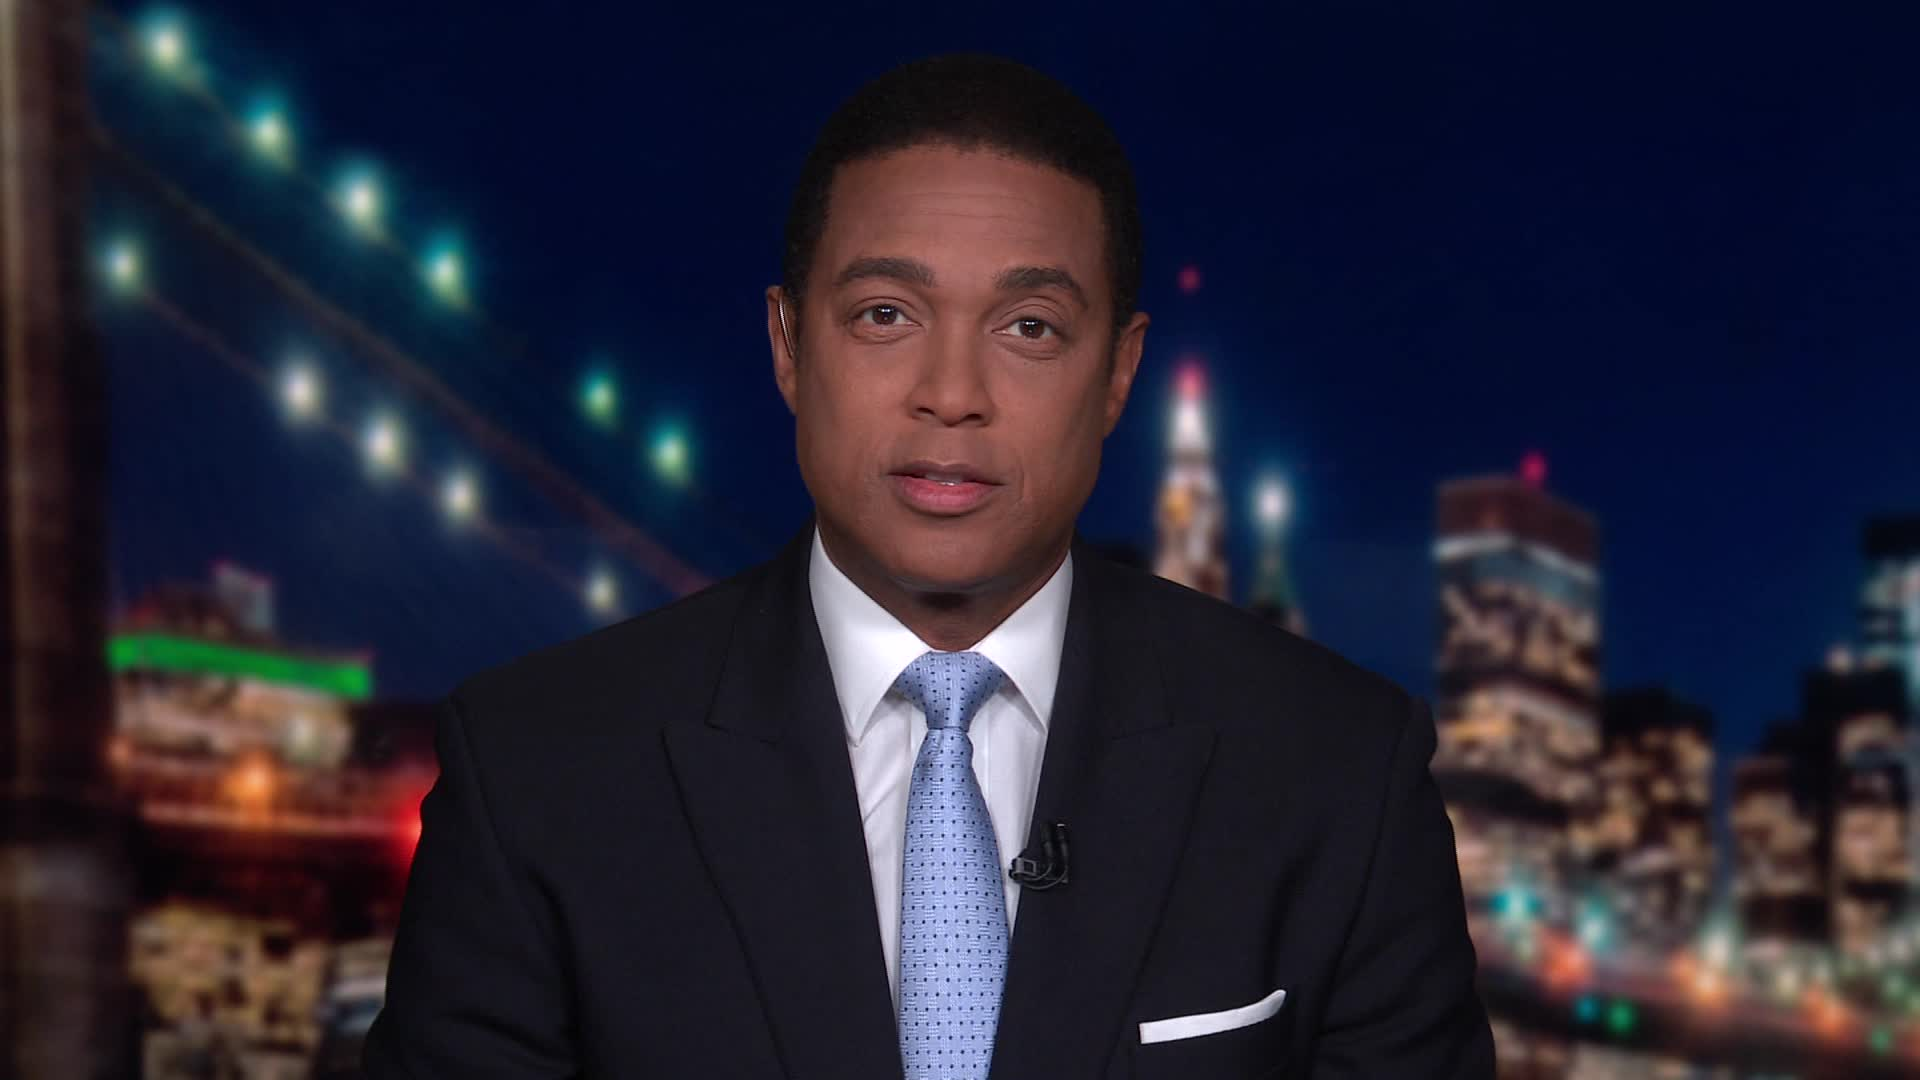 Don Lemon To Trump What Is It About Obama That Gets Under Your